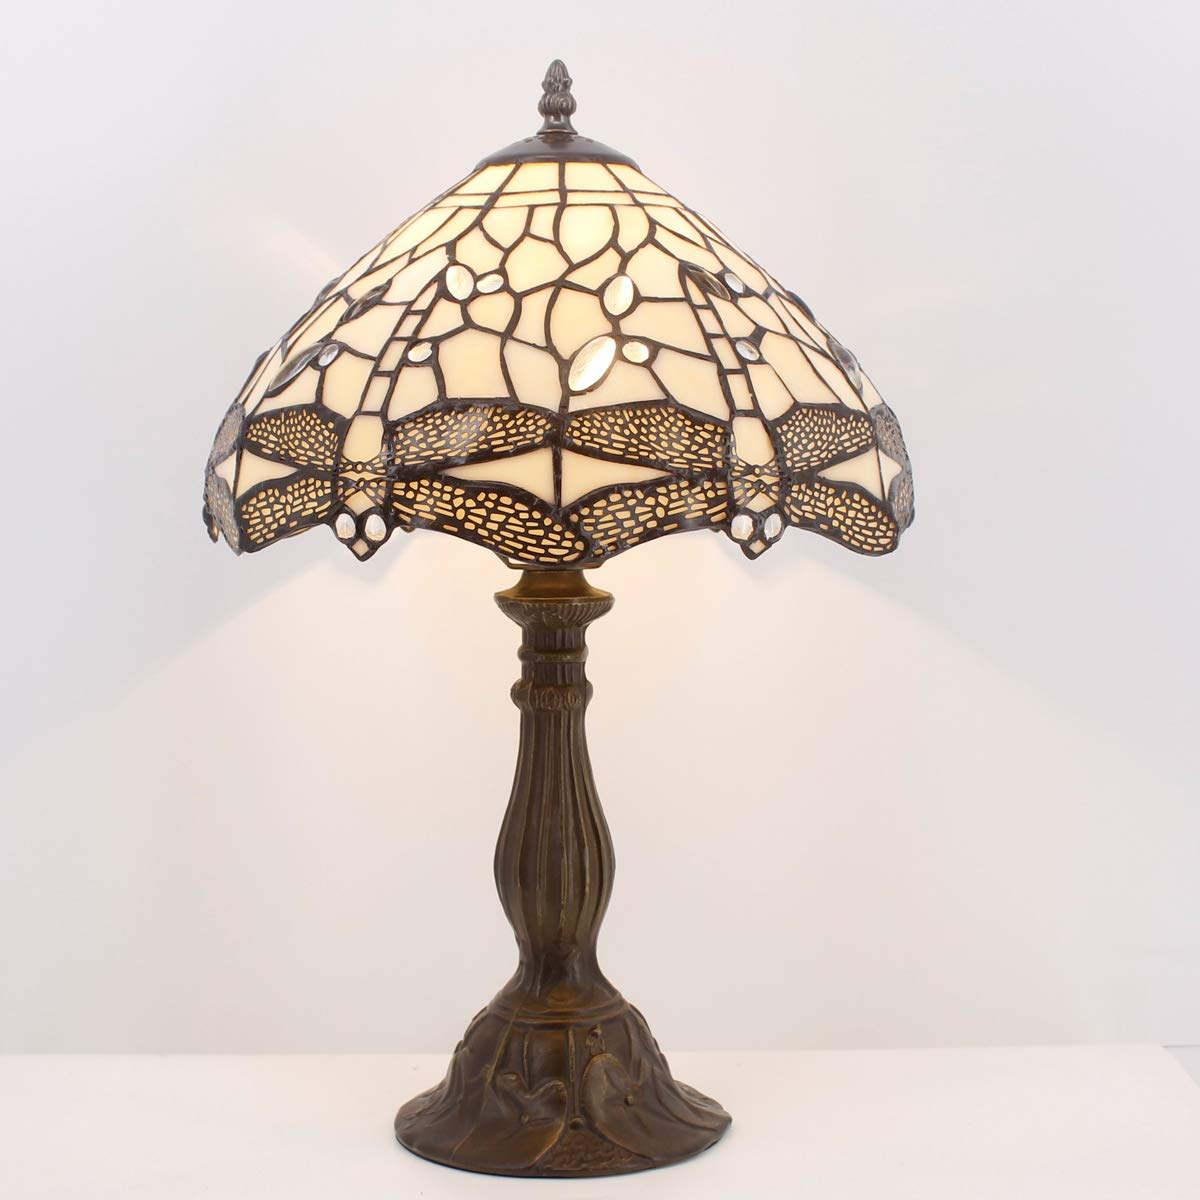 Tiffany Table Lamp Stained Glass Lotus Style Table Lamps Height 18 Inch for Living Room Antique Desk Beside Bedroom with Antique Style Zinc Base Sets S220 WERFACTORY